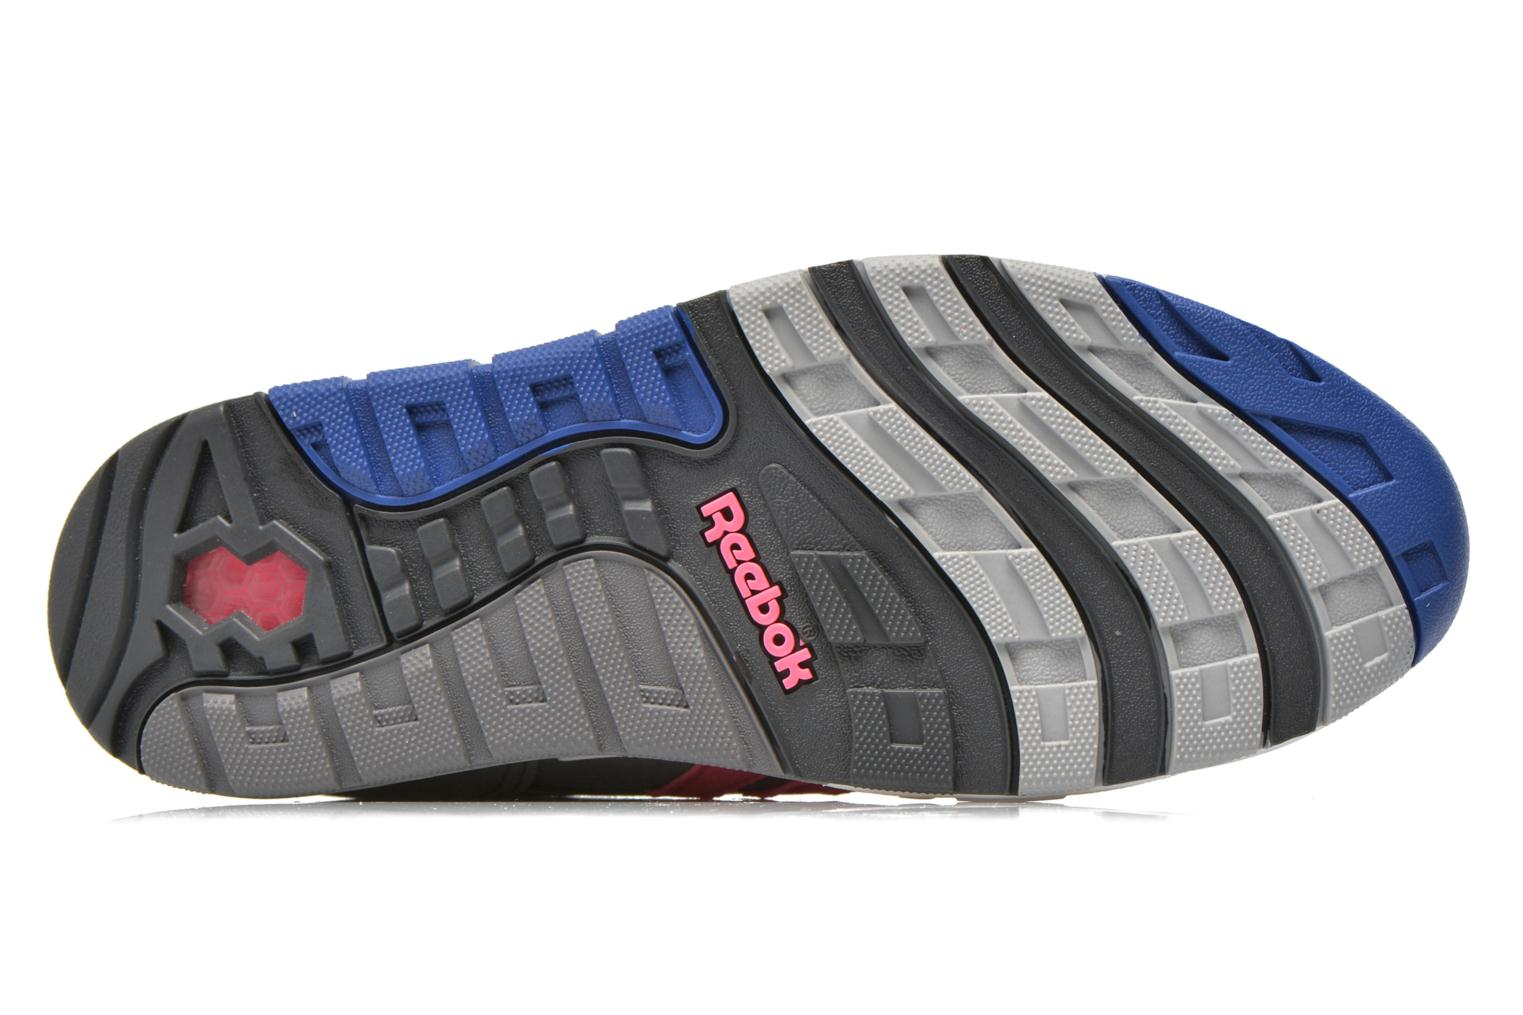 Ventilator Supreme R90 Baseball Grey/Solar Pink/Cllgt Royal/Wht